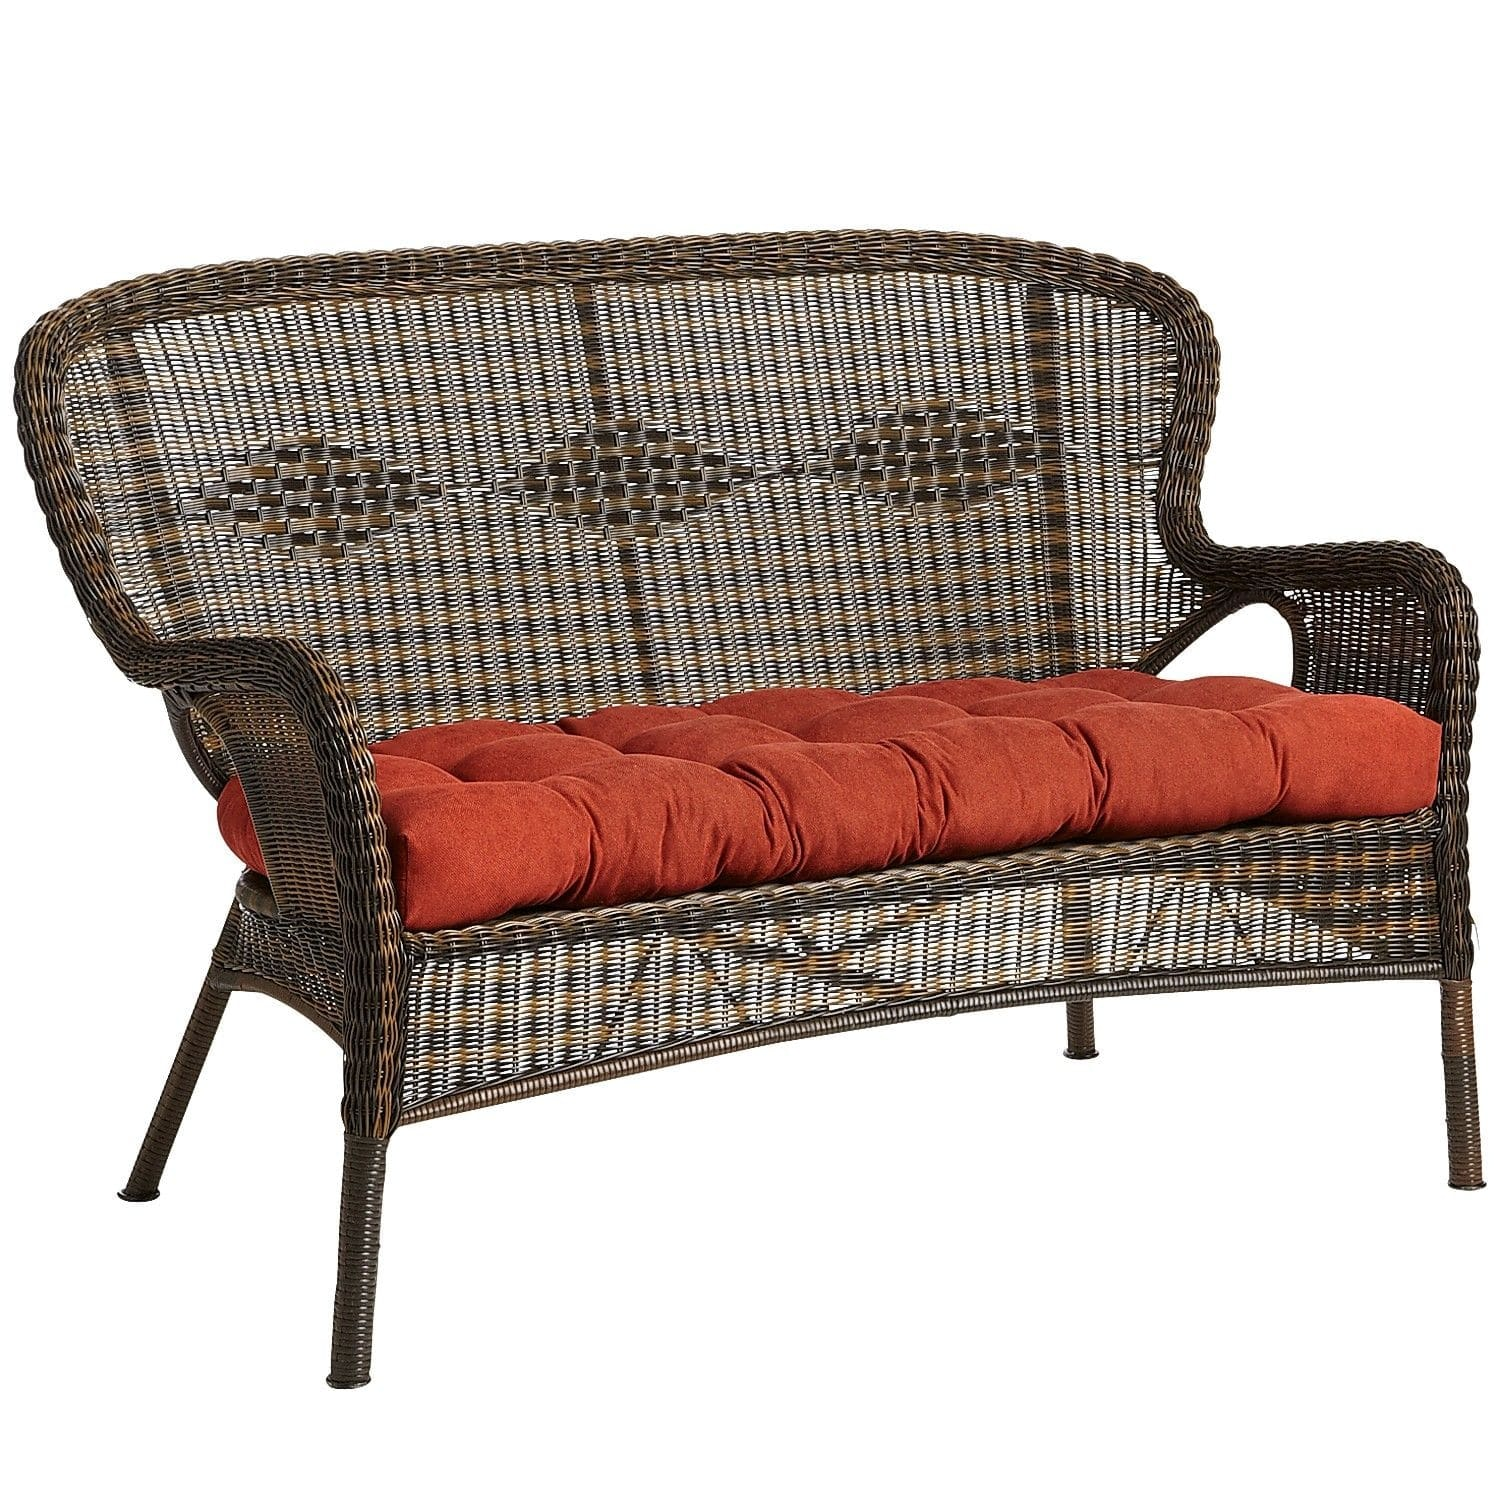 Pier One Wicker Furniture | Pier One Rattan | Pier One Import Furniture